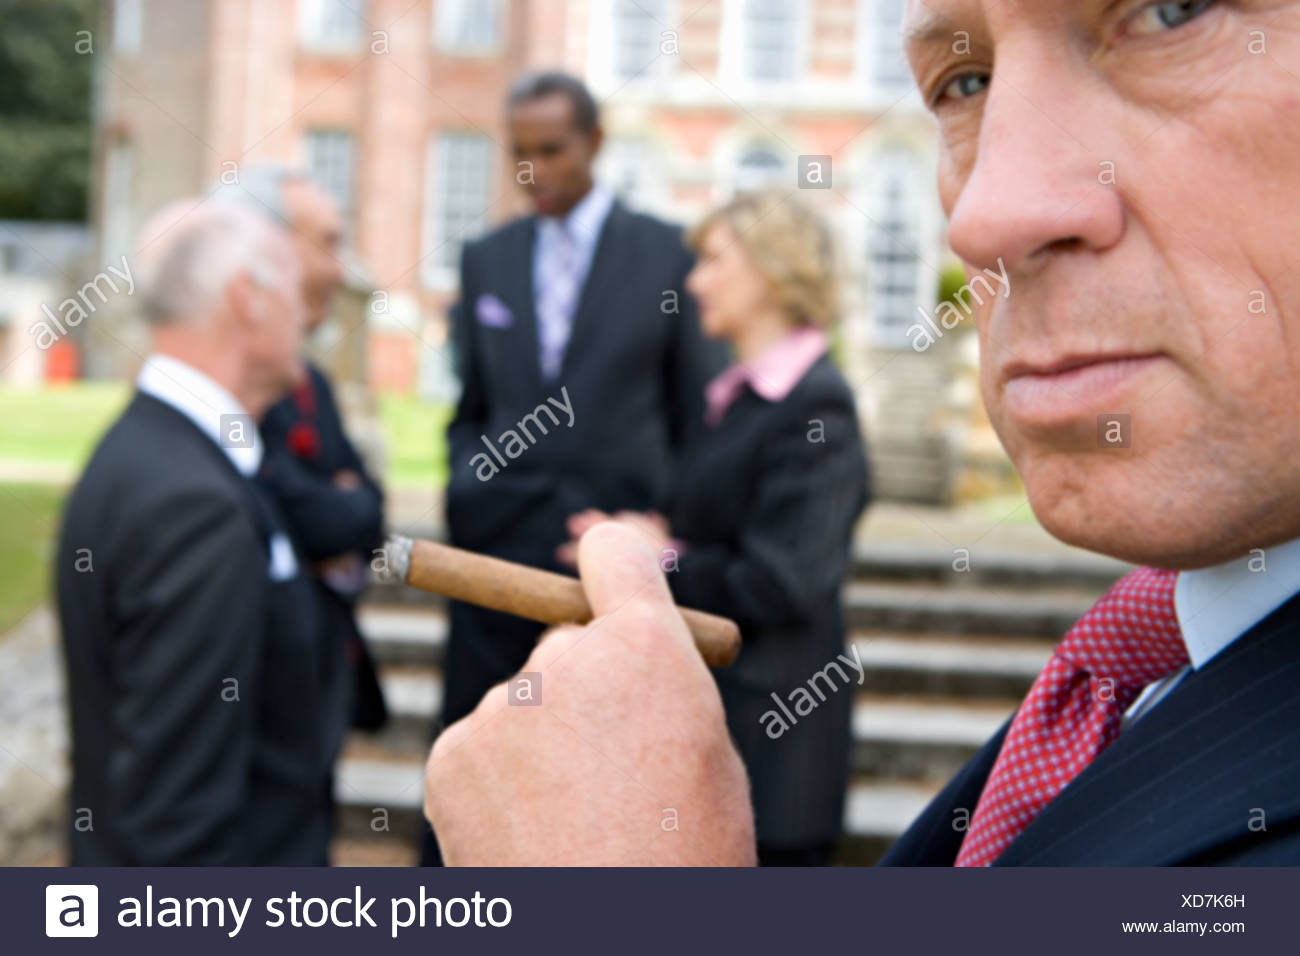 Businessman with cigar by manor house, colleagues in background, close-up Stock Photo